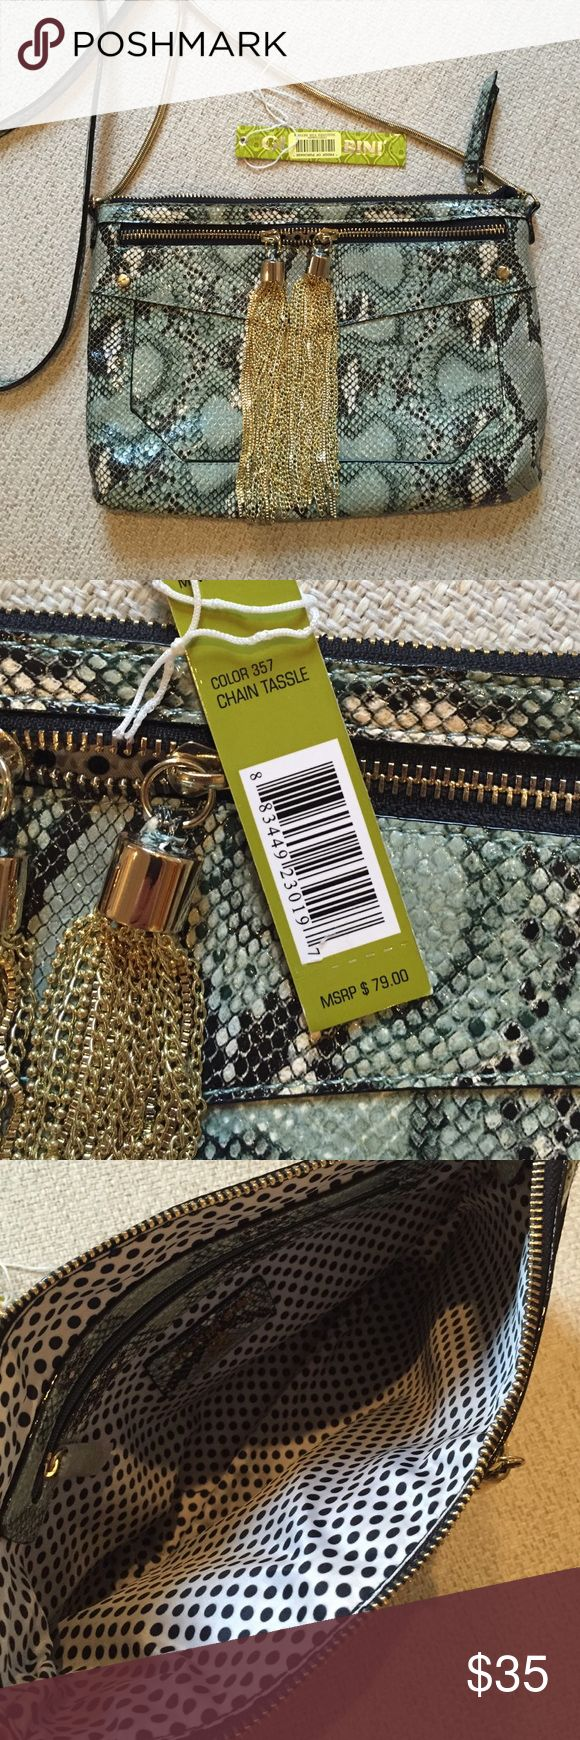 NWT Gianni Bini Crossbody purse NWT Super cute snakeskin print Gianni Bini Crossbody purse. Front zip pocket with gold tassels. This purse will add a pop to any outfit. Gianni Bini Bags Crossbody Bags